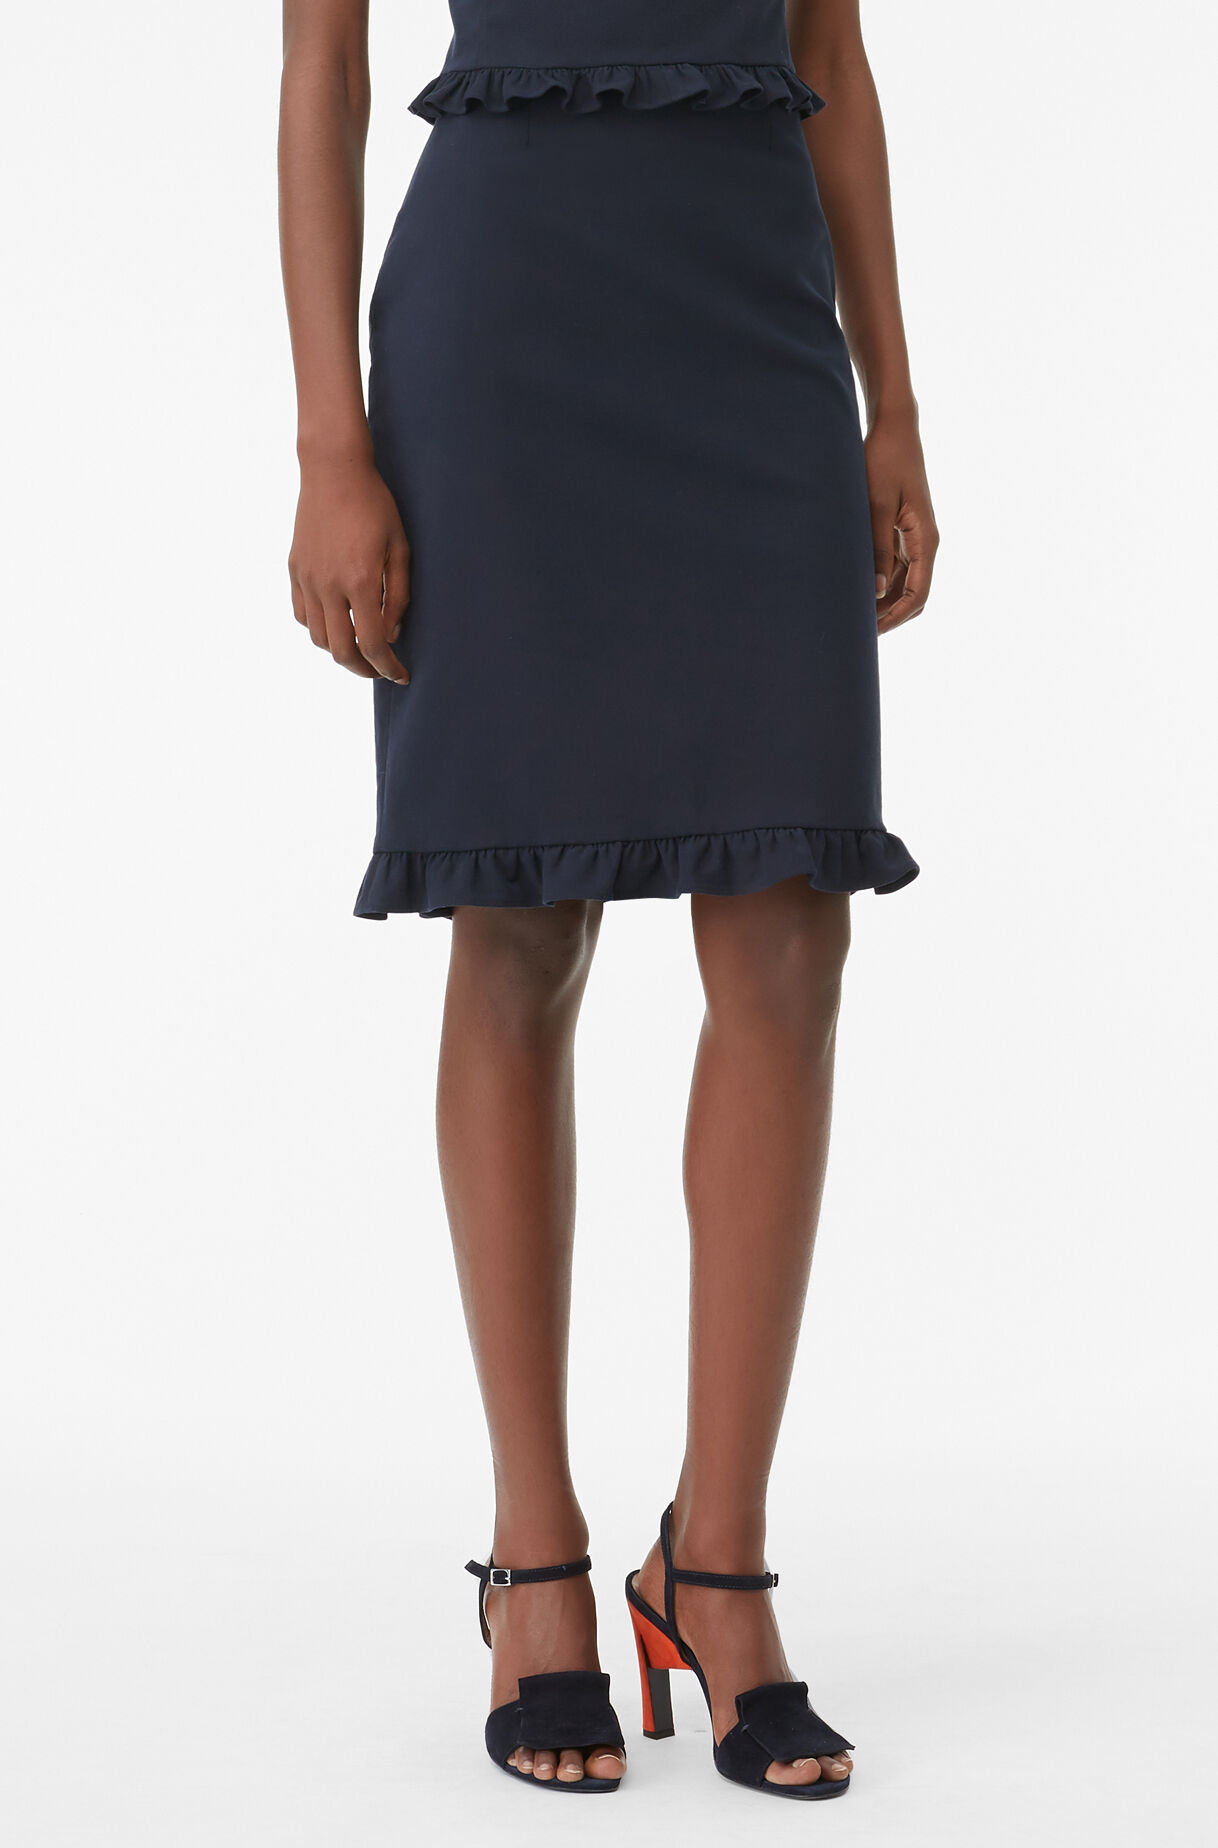 Tailored Ruffle Suiting Skirt, , large